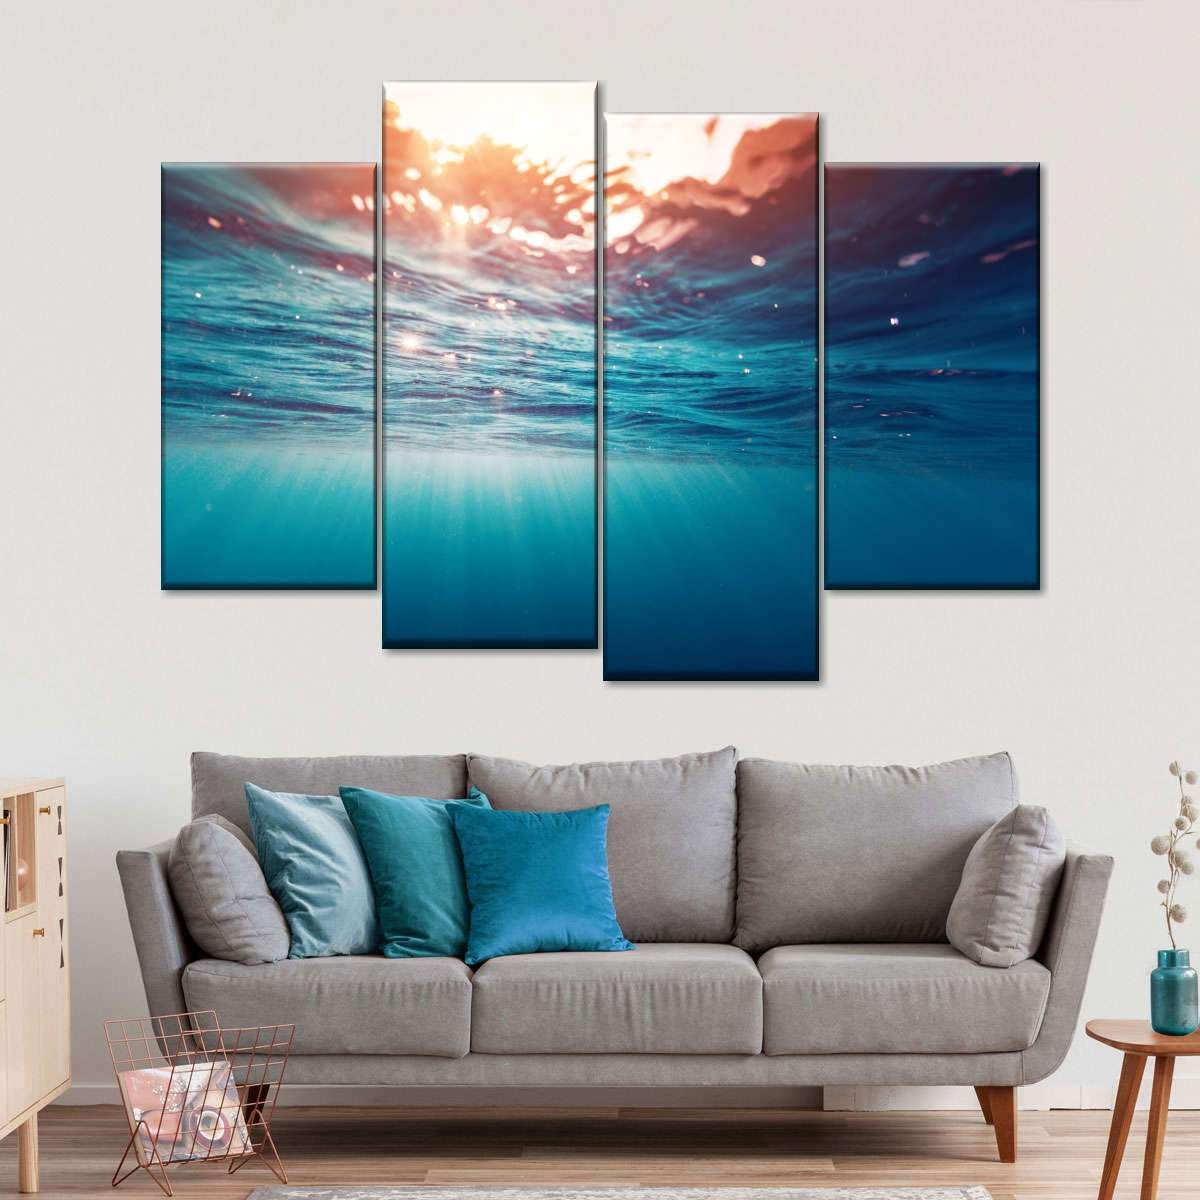 Underwater Sunrays Multi Panel Canvas Wall Art is a great way to unwind and relax no matter what situation you are in. Take the pleasure of blue water and soft sand with this beautiful canvas art print.